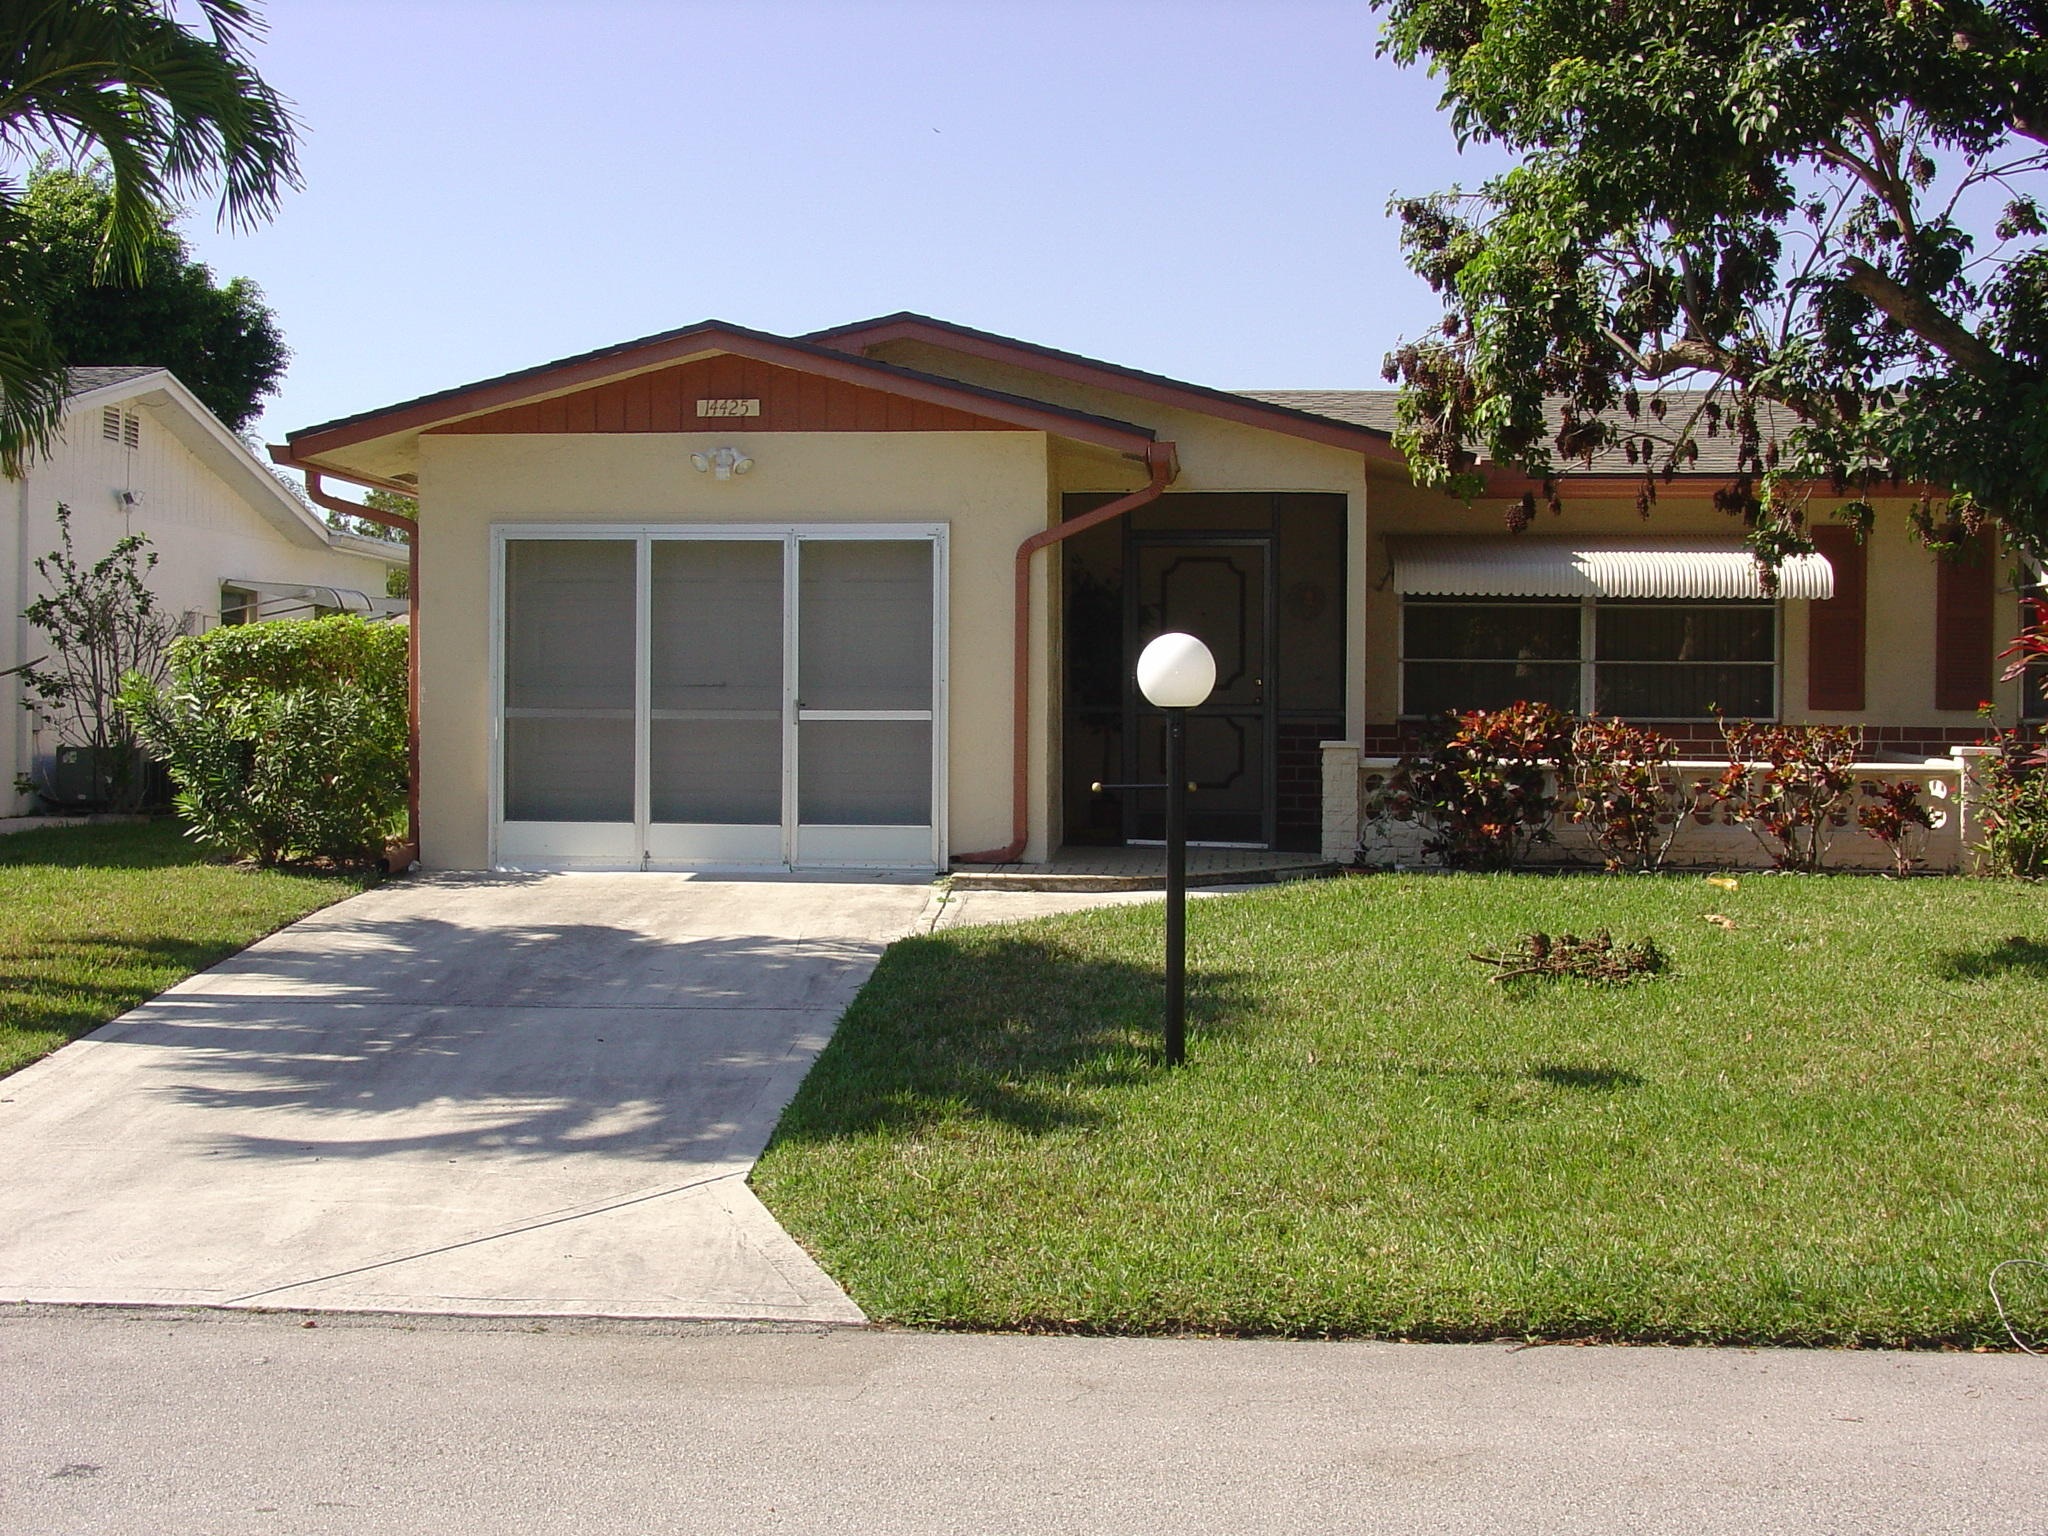 A lovely 2-BR, 2-BA SFH within Delray Villa's is updated, with 1 CG.  There is a subdivision pool and also a Community Clubhouse.  Neutral and bright with tiled living areas and eat-in kitchen and sitting area next to kitchen.  Within driving distance of public golf courses and trendy downtown downtown Delray Beach with open cafes, bistro's and shopping on Atlantic Ave and a 2 mile stretch of white sand beach - The Atlantic Ocean Shoreline.